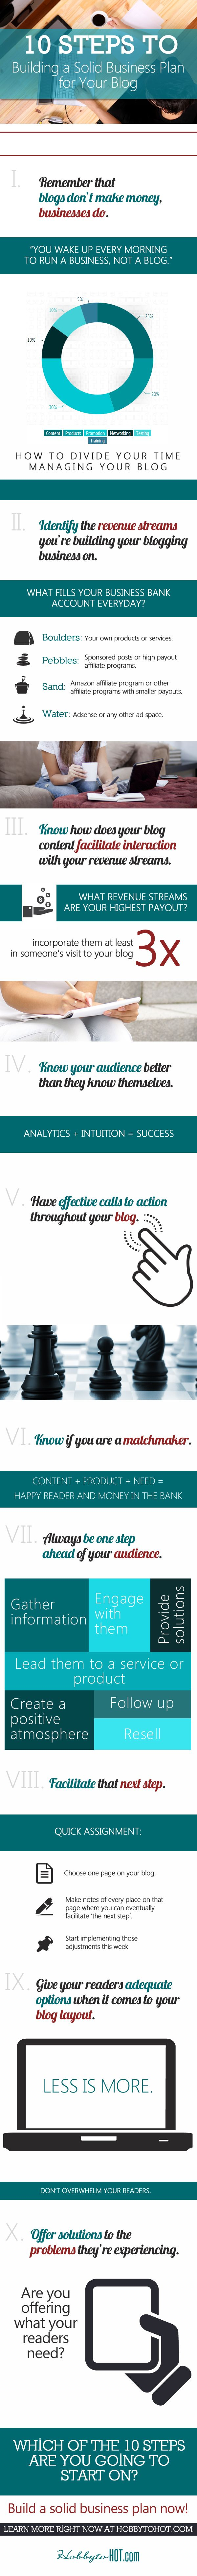 How to Create a Successful Business Plan for Your Blog #bloggingtips #blogging